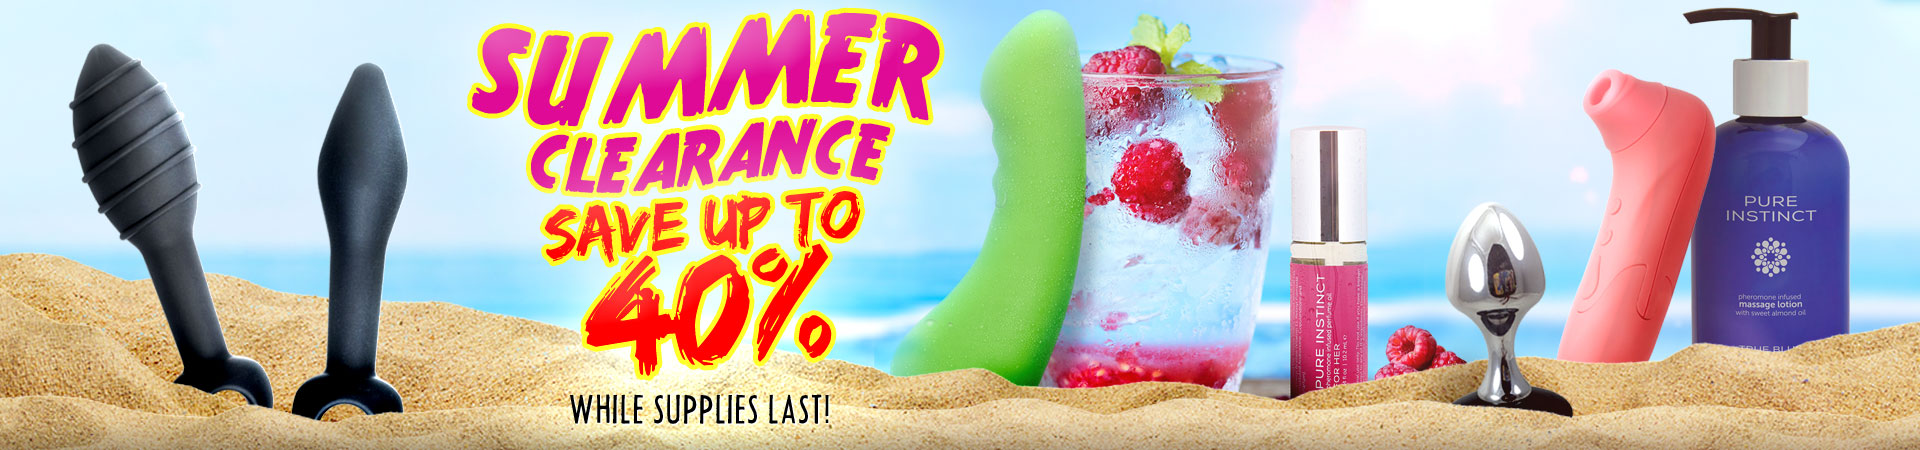 Summer Clearance - Save Up To 40% - While Supplies Last!